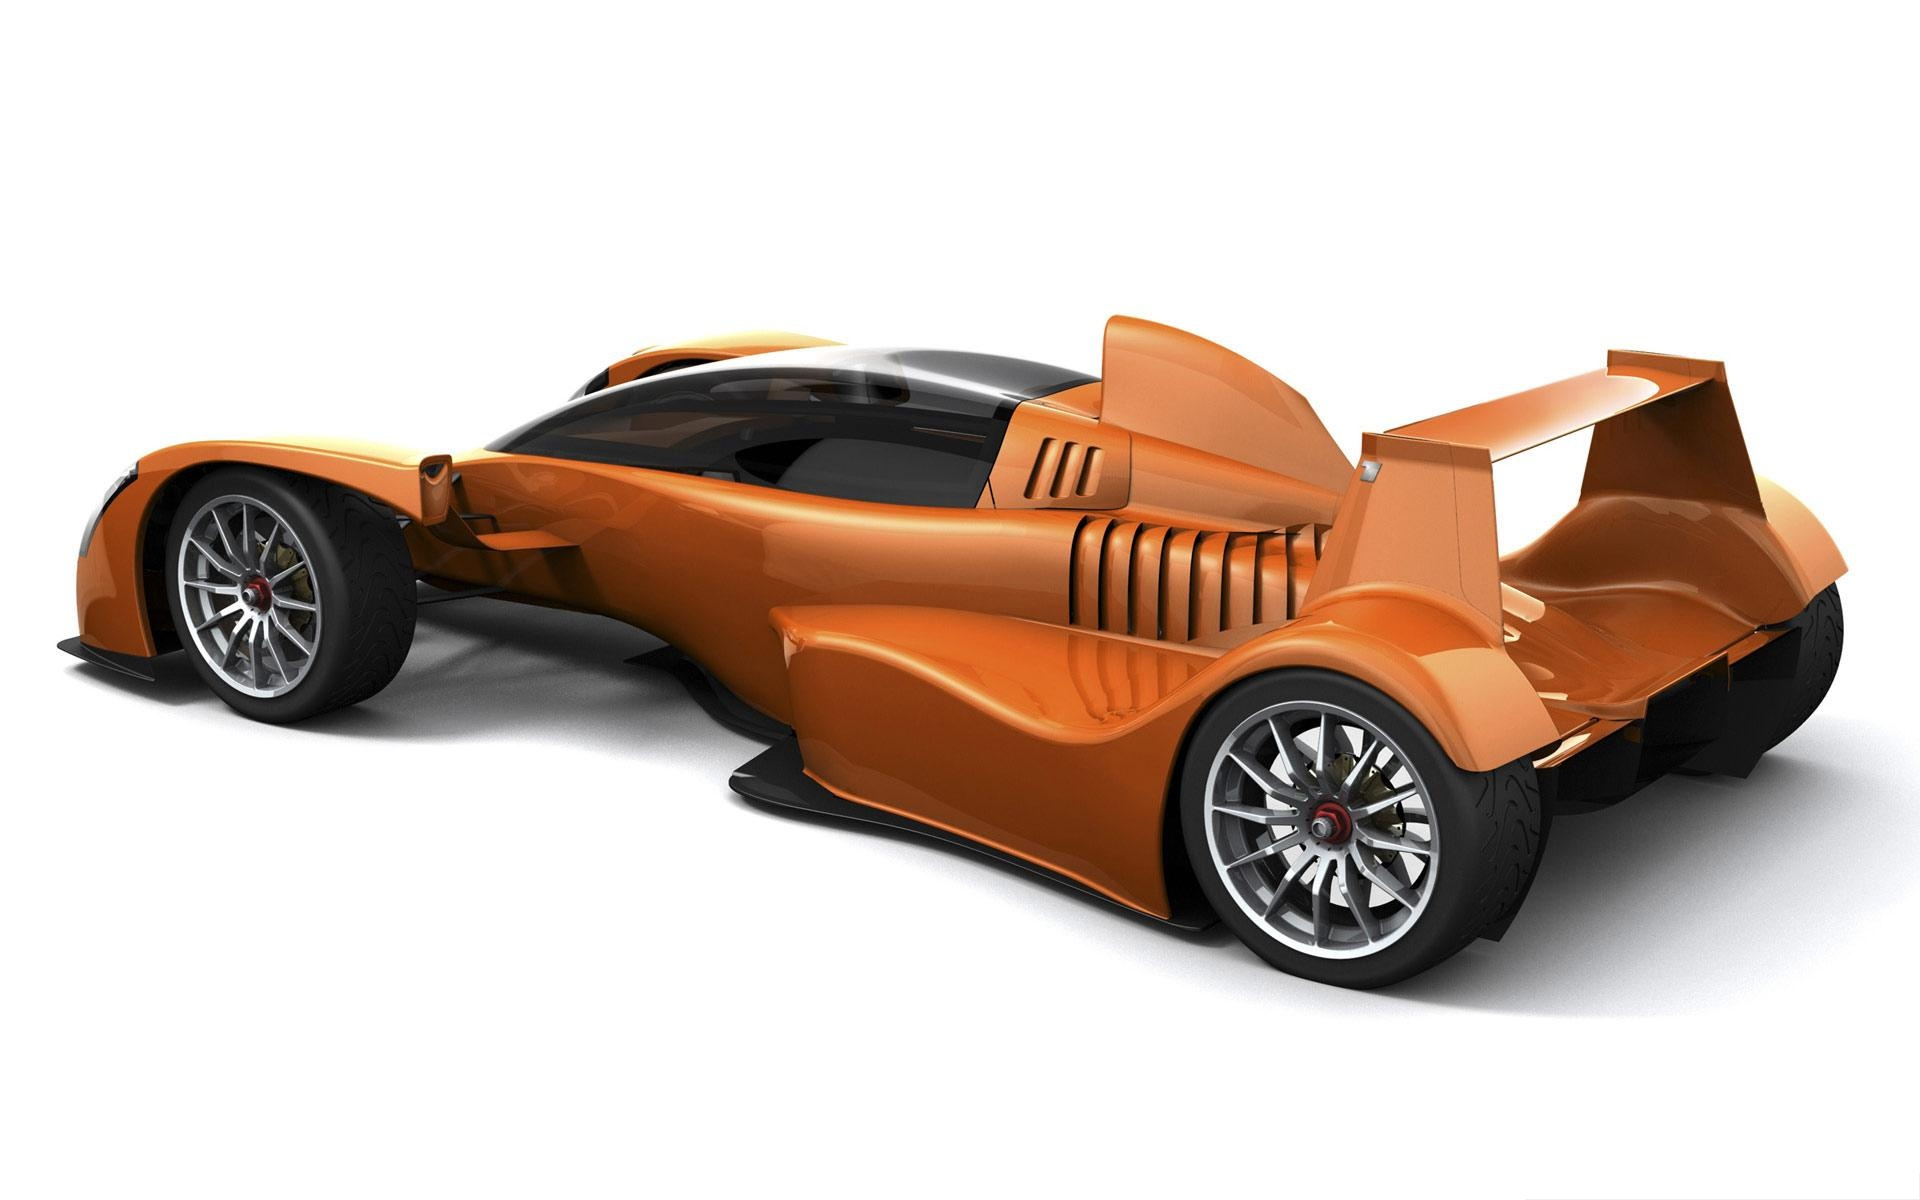 click to free download the wallpaper--3D Car as Background, Orange Car on White Background, Nice Look 1920X1200 free wallpaper download